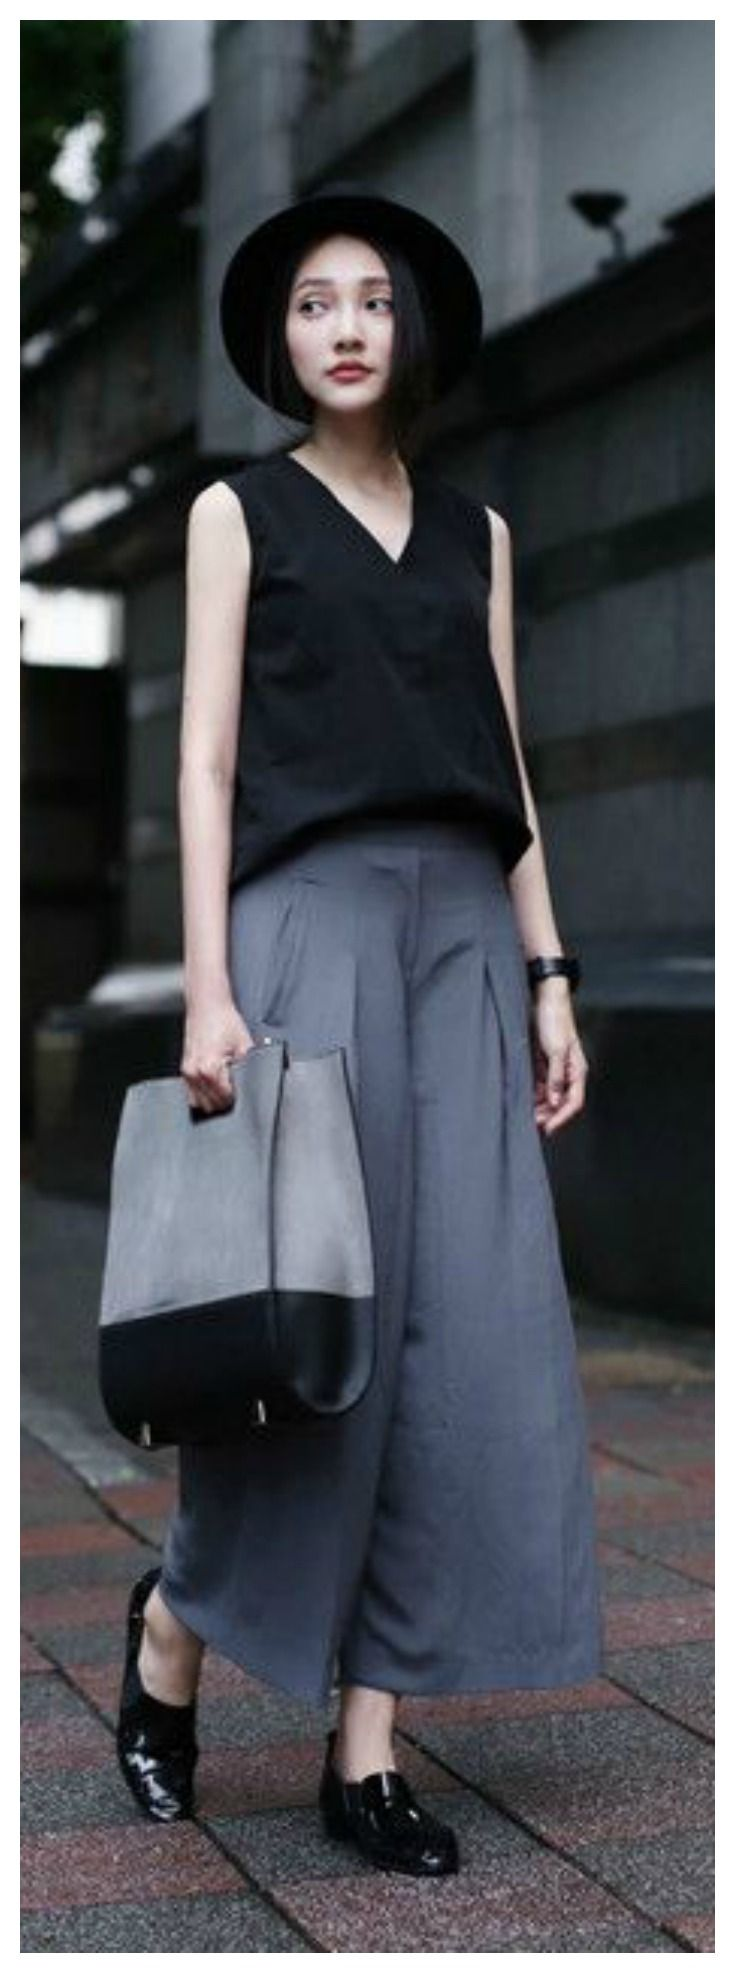 Japanese style fashion tee dress fits perfectly on you